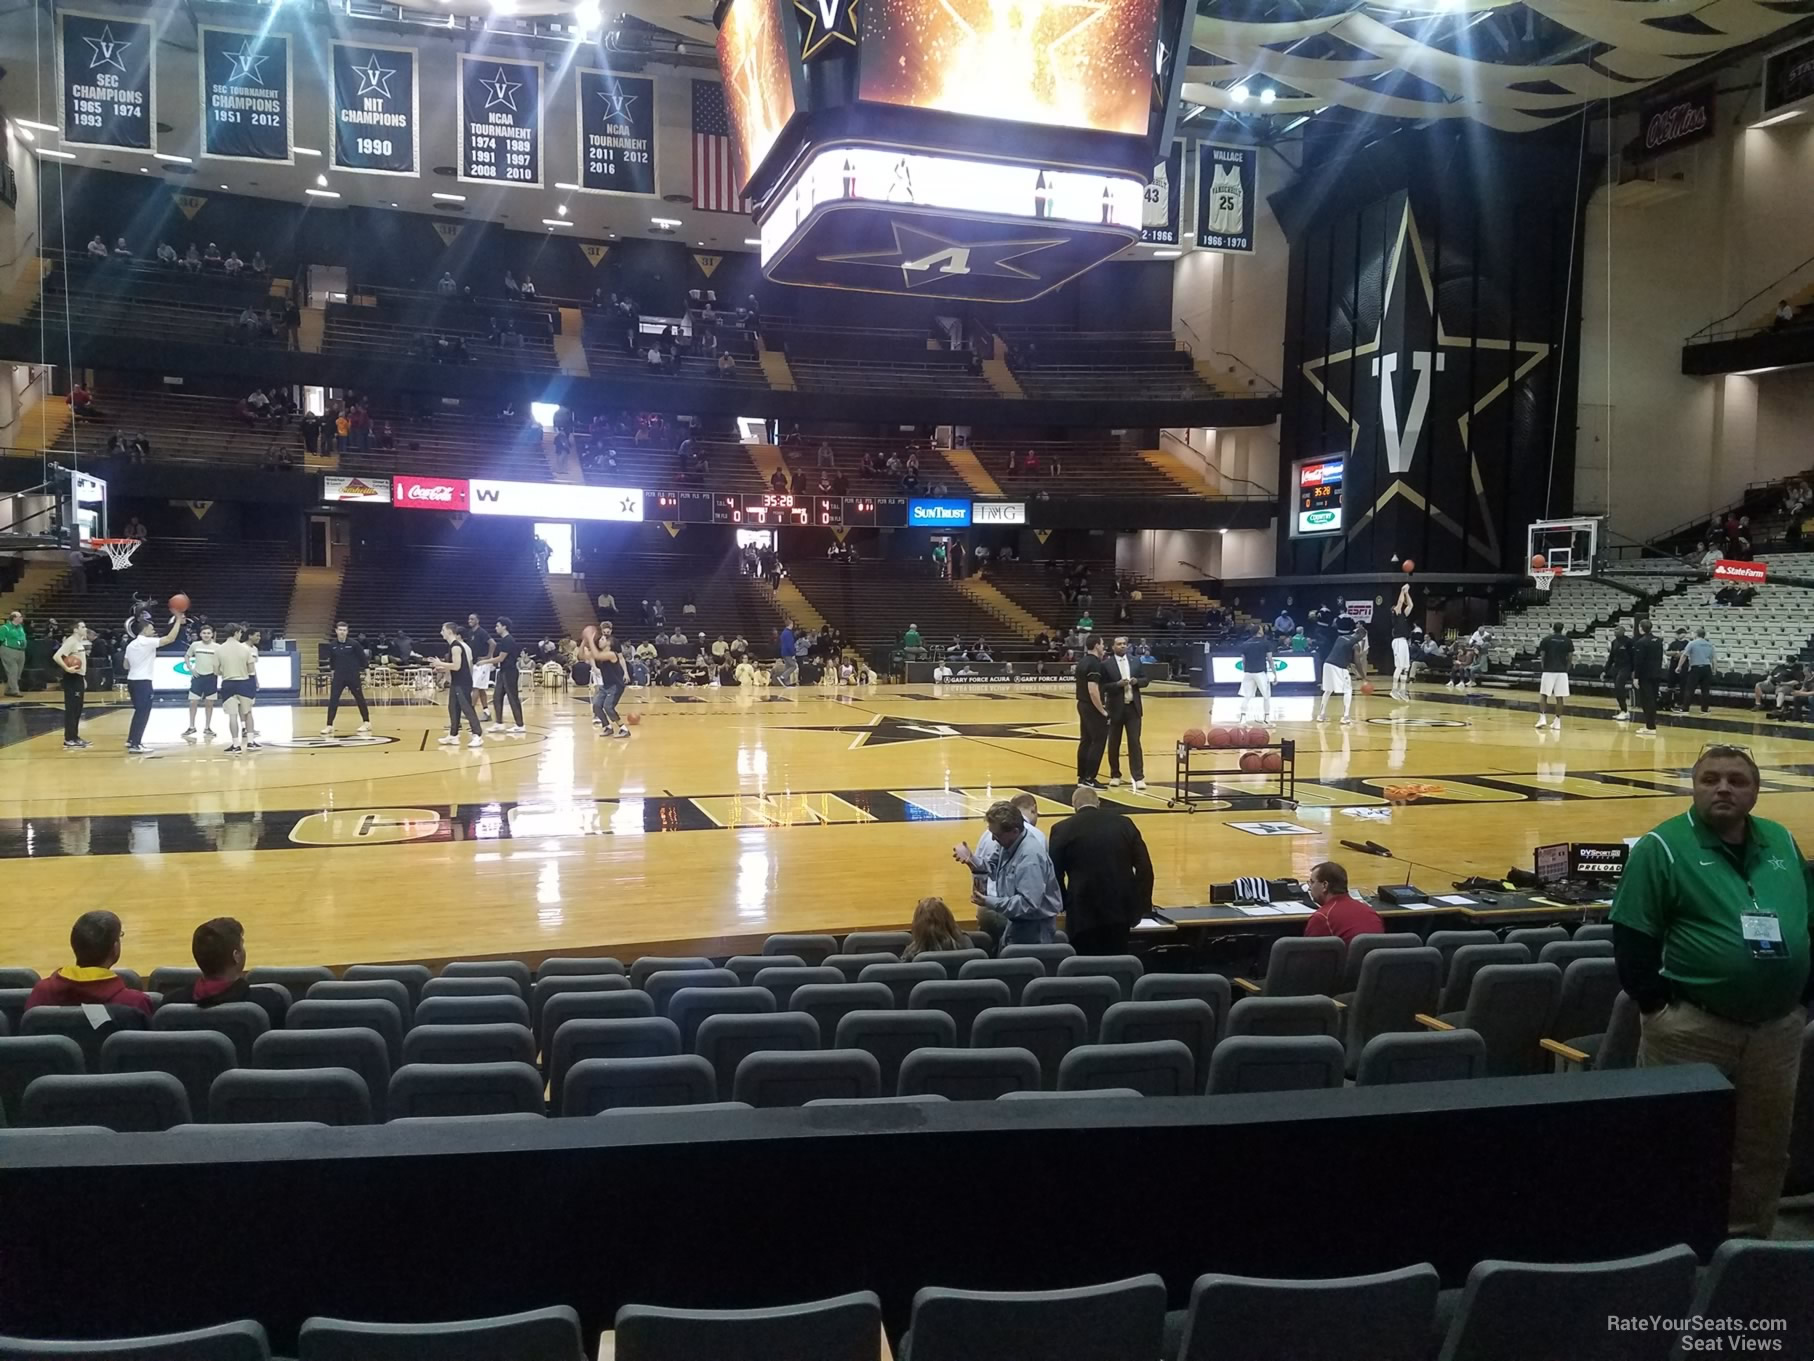 Seat View for Memorial Gymnasium Section D, Row 13